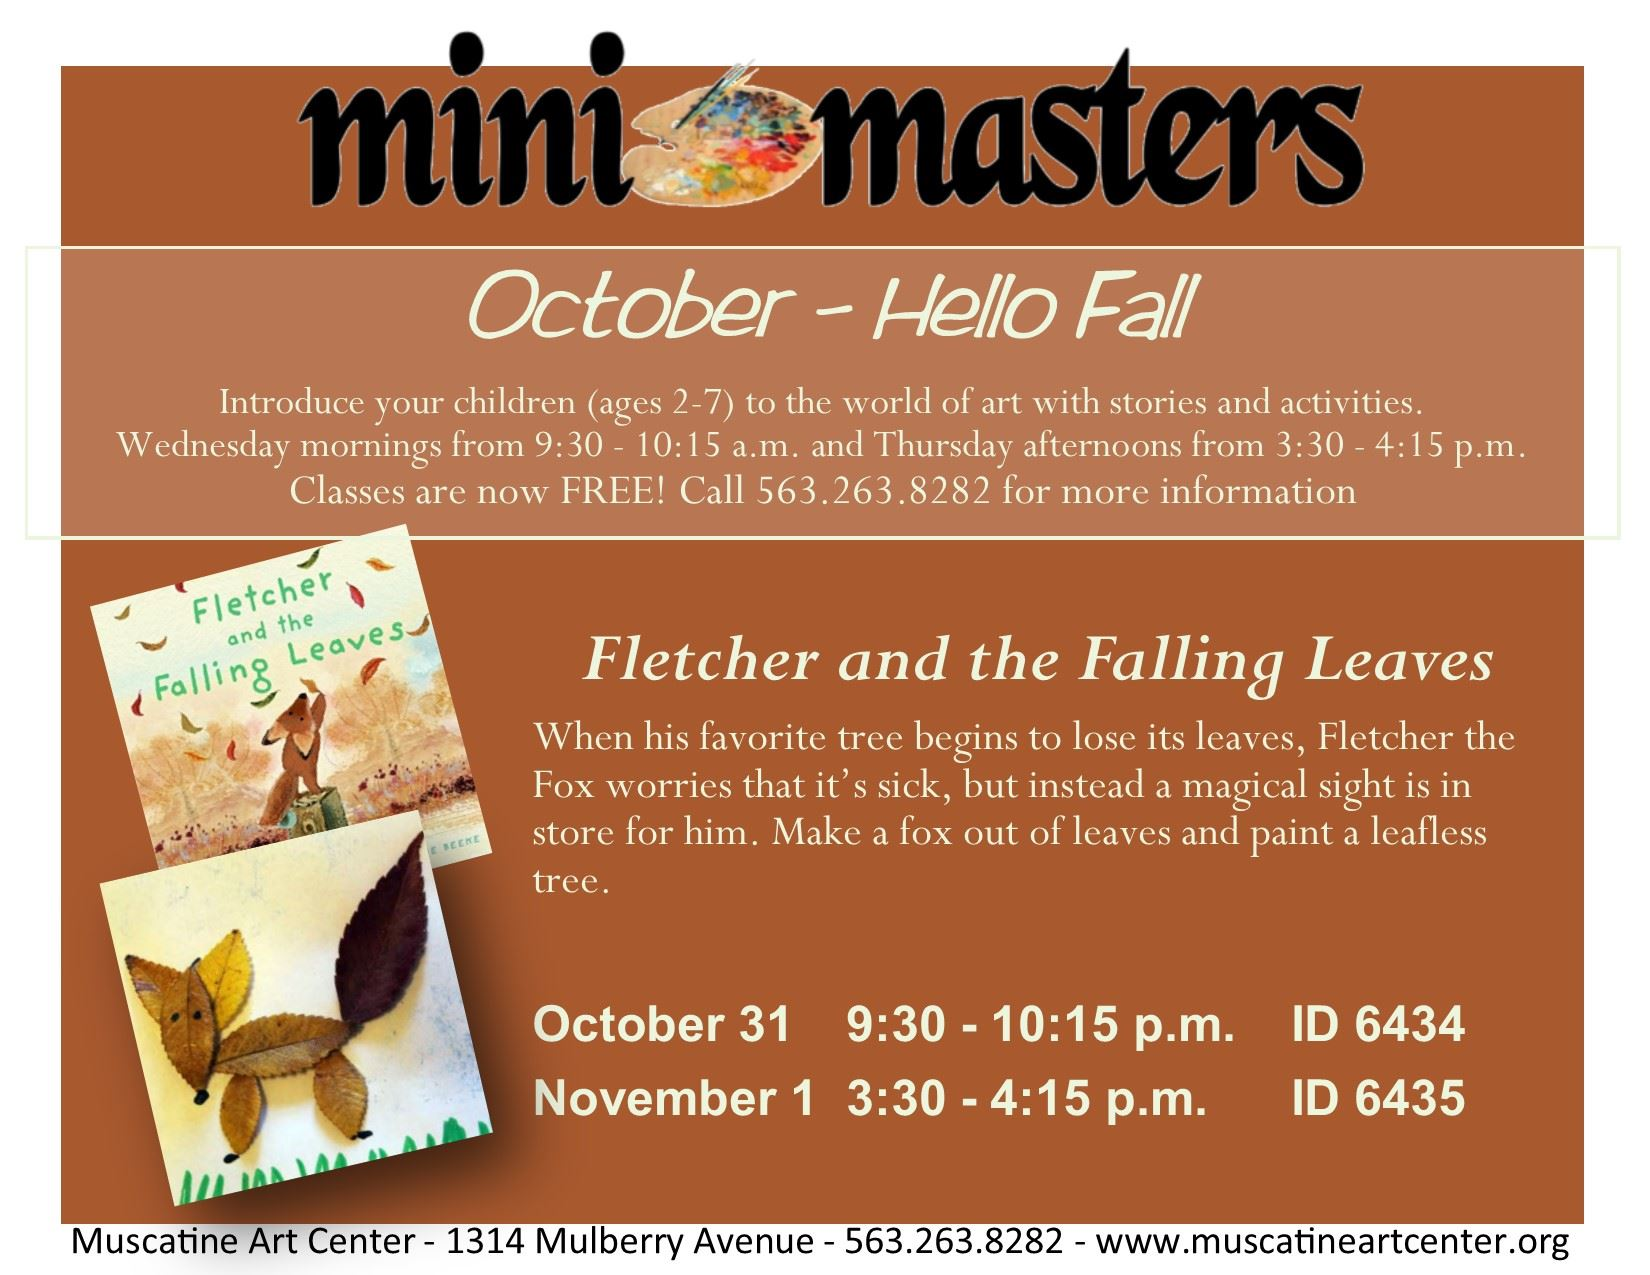 October 31-1 - mini masters - Fletcher and the Falling Leaves